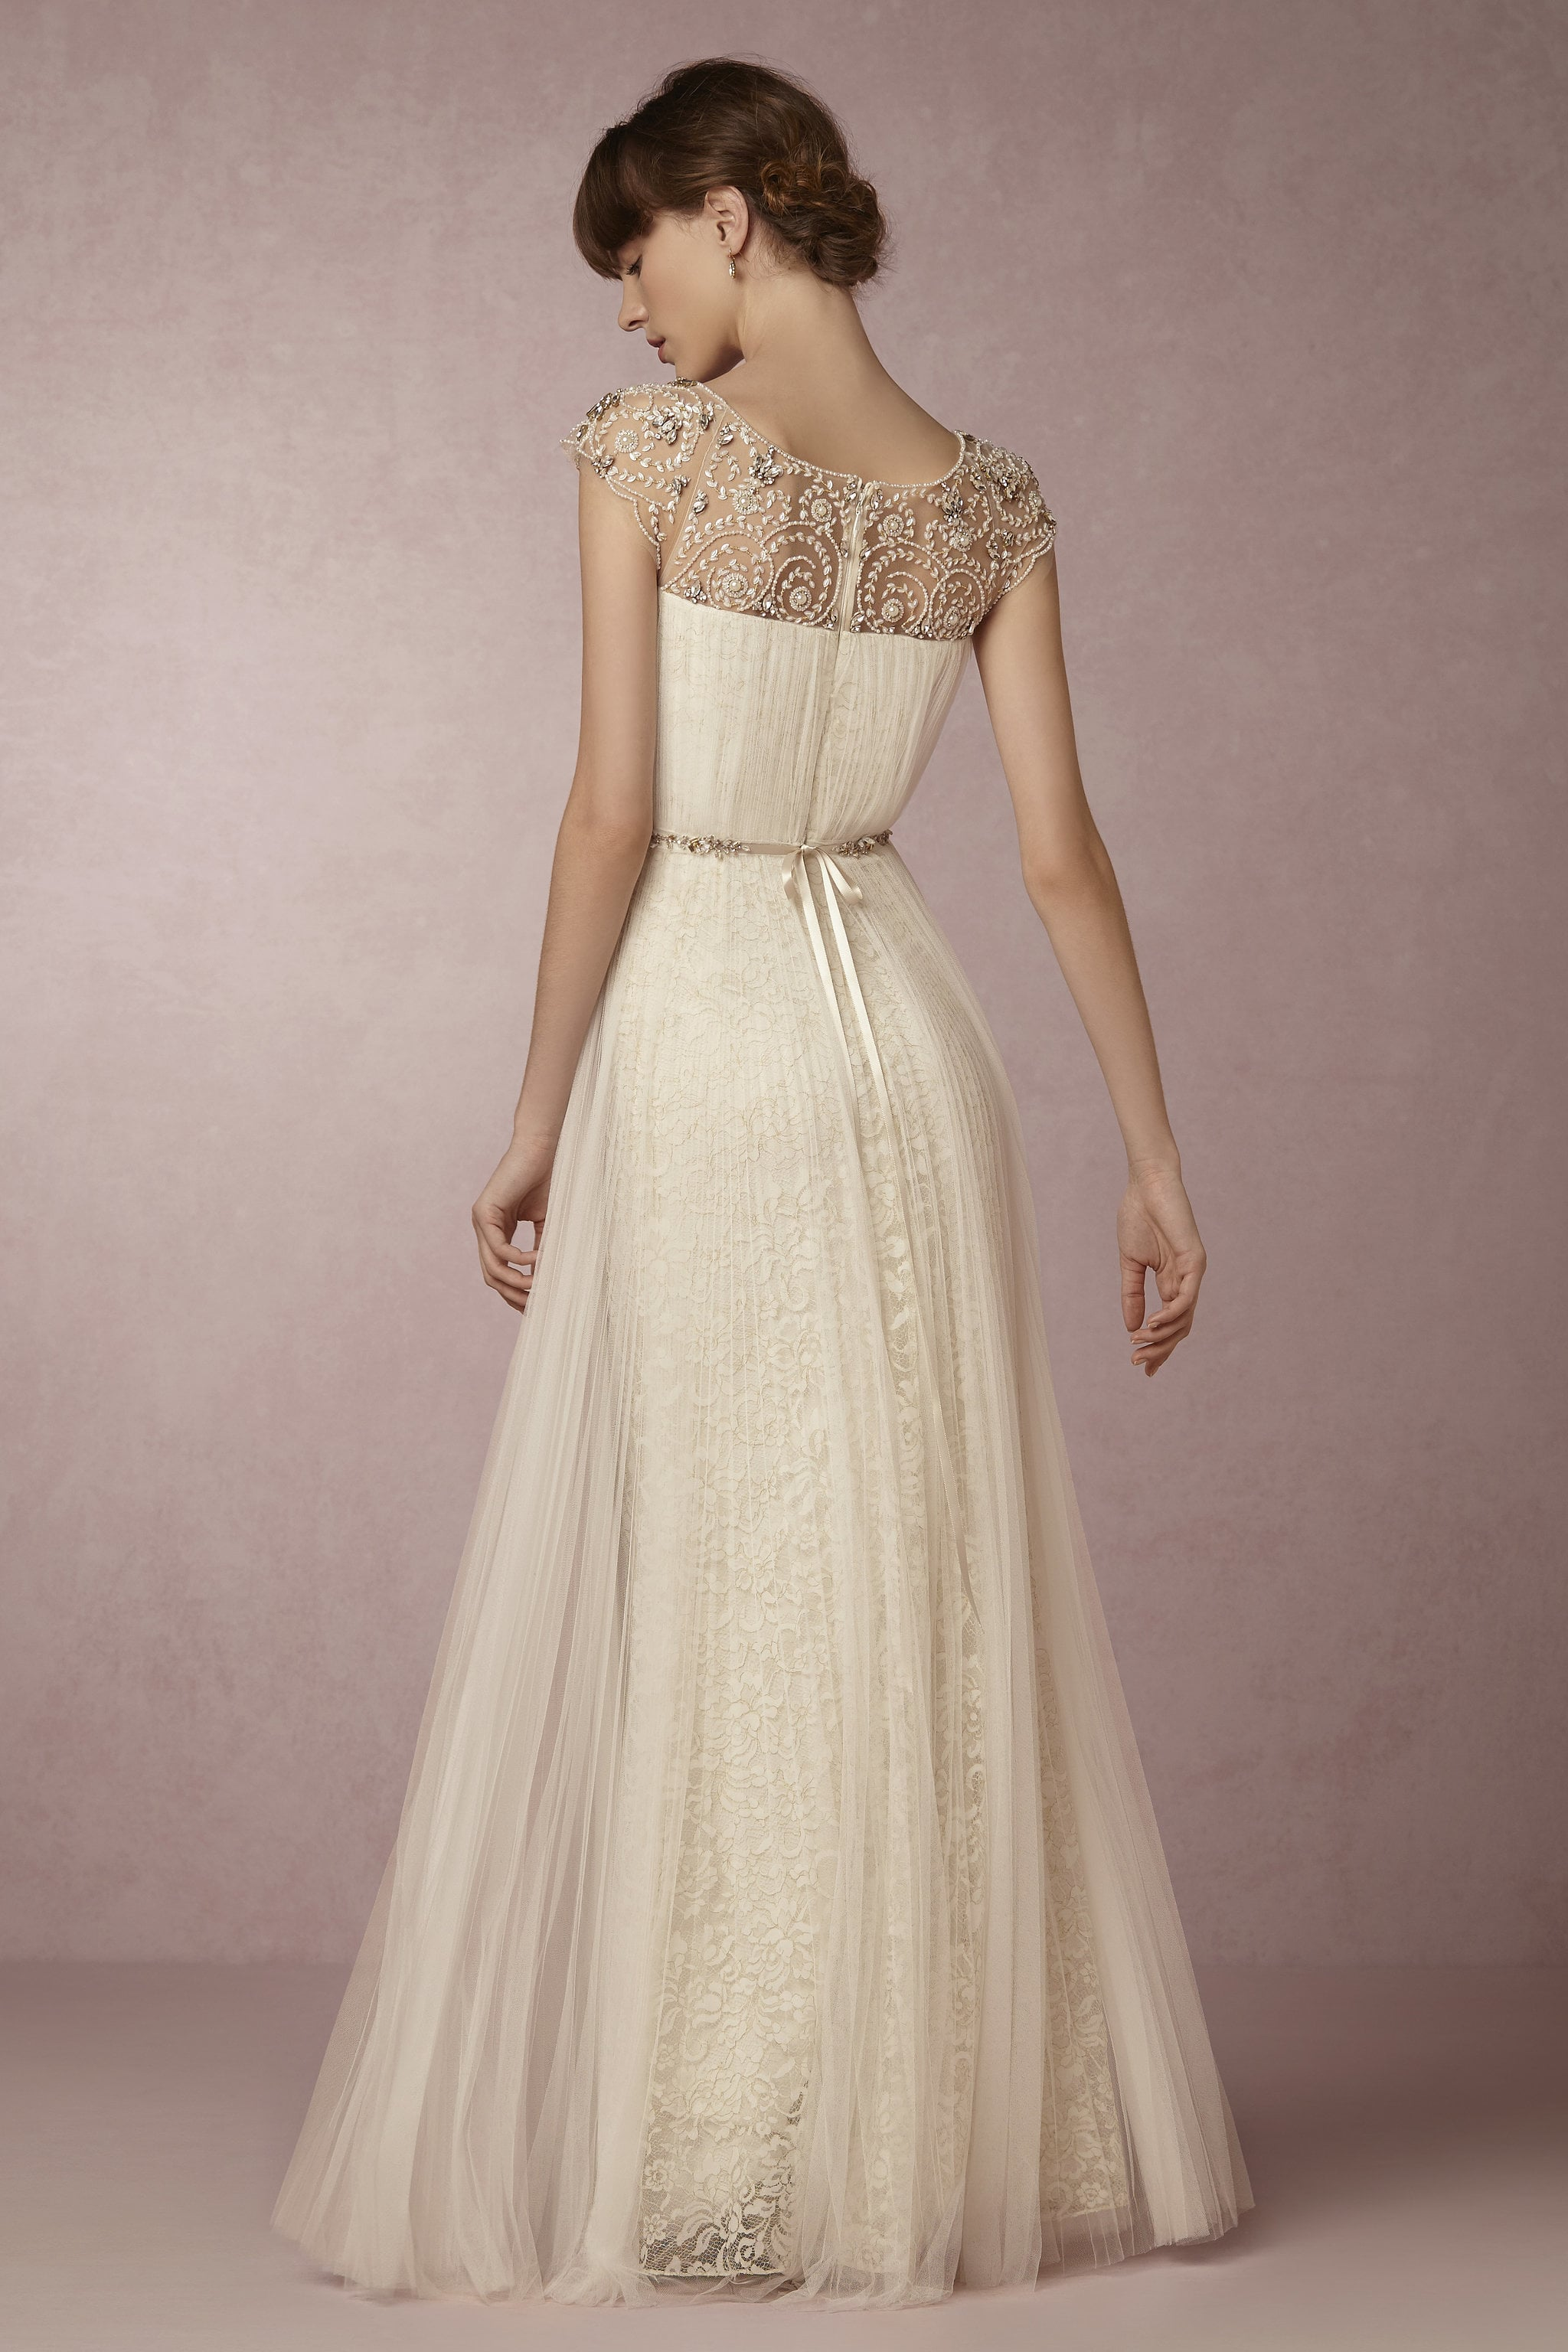 BHLDN-x-Marchesa-Wedding-Dress-Collaboration-Spring-2016 copy.jpg